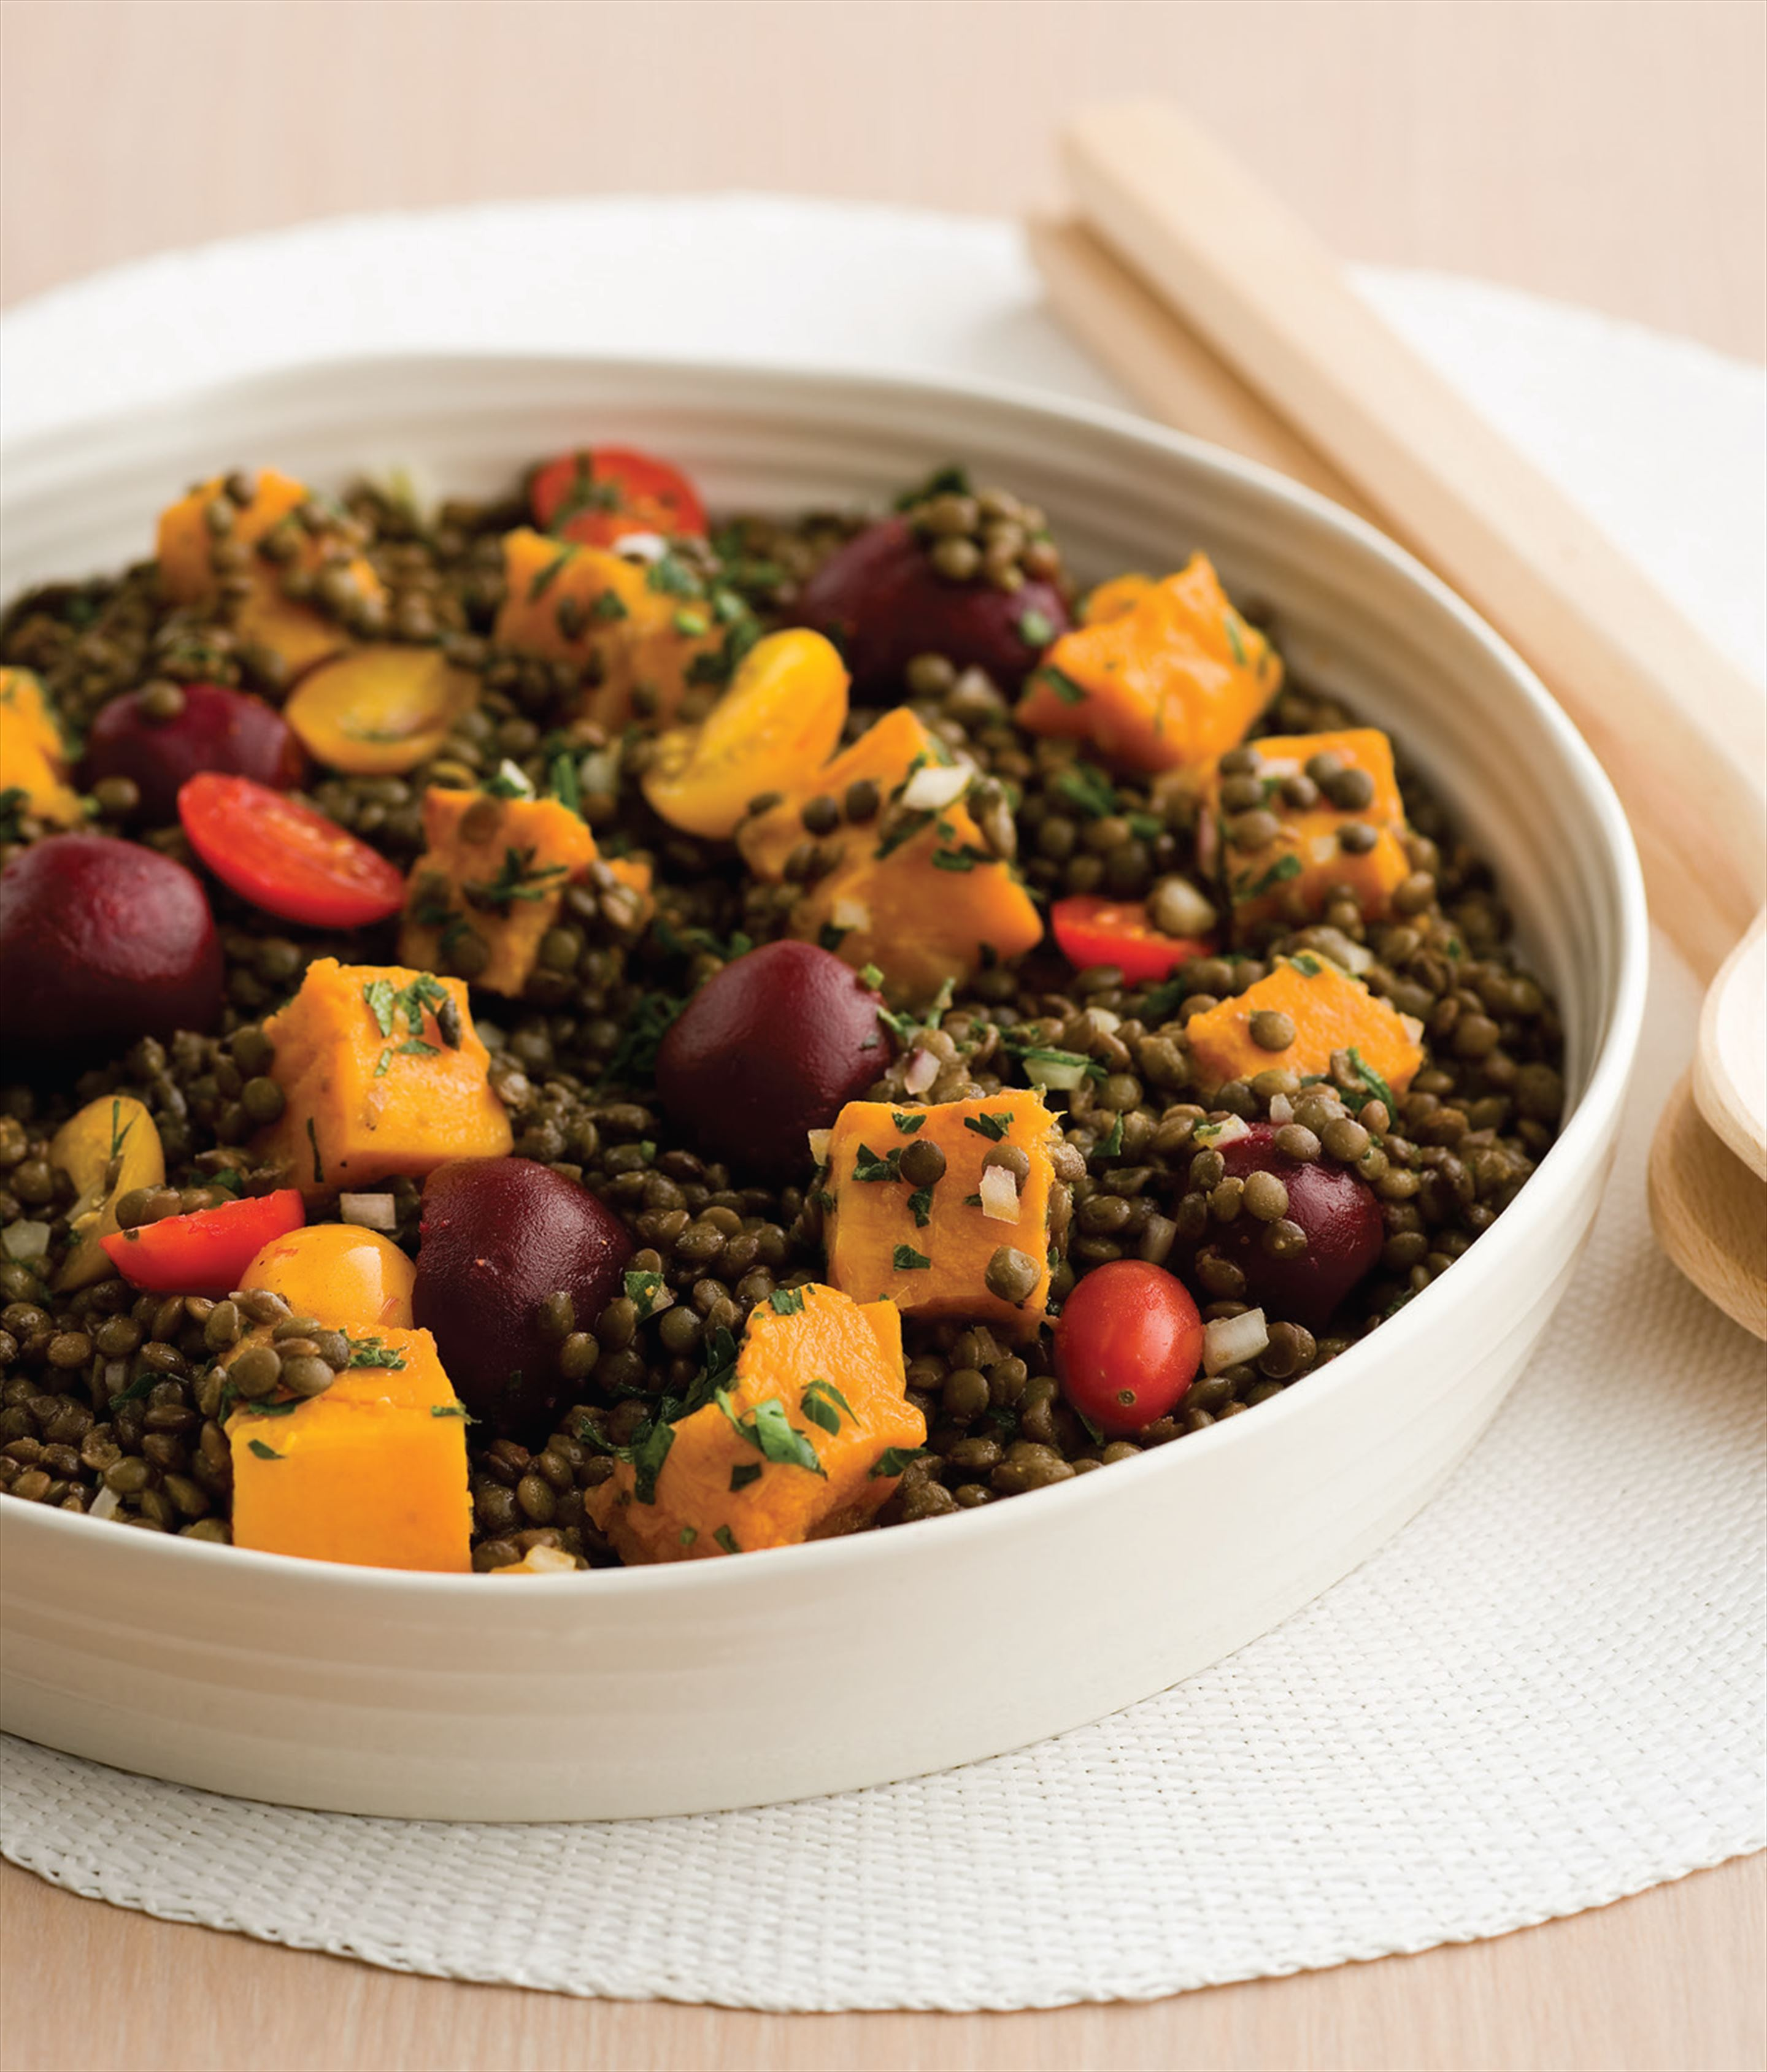 Lentil, beetroot and pumpkin salad